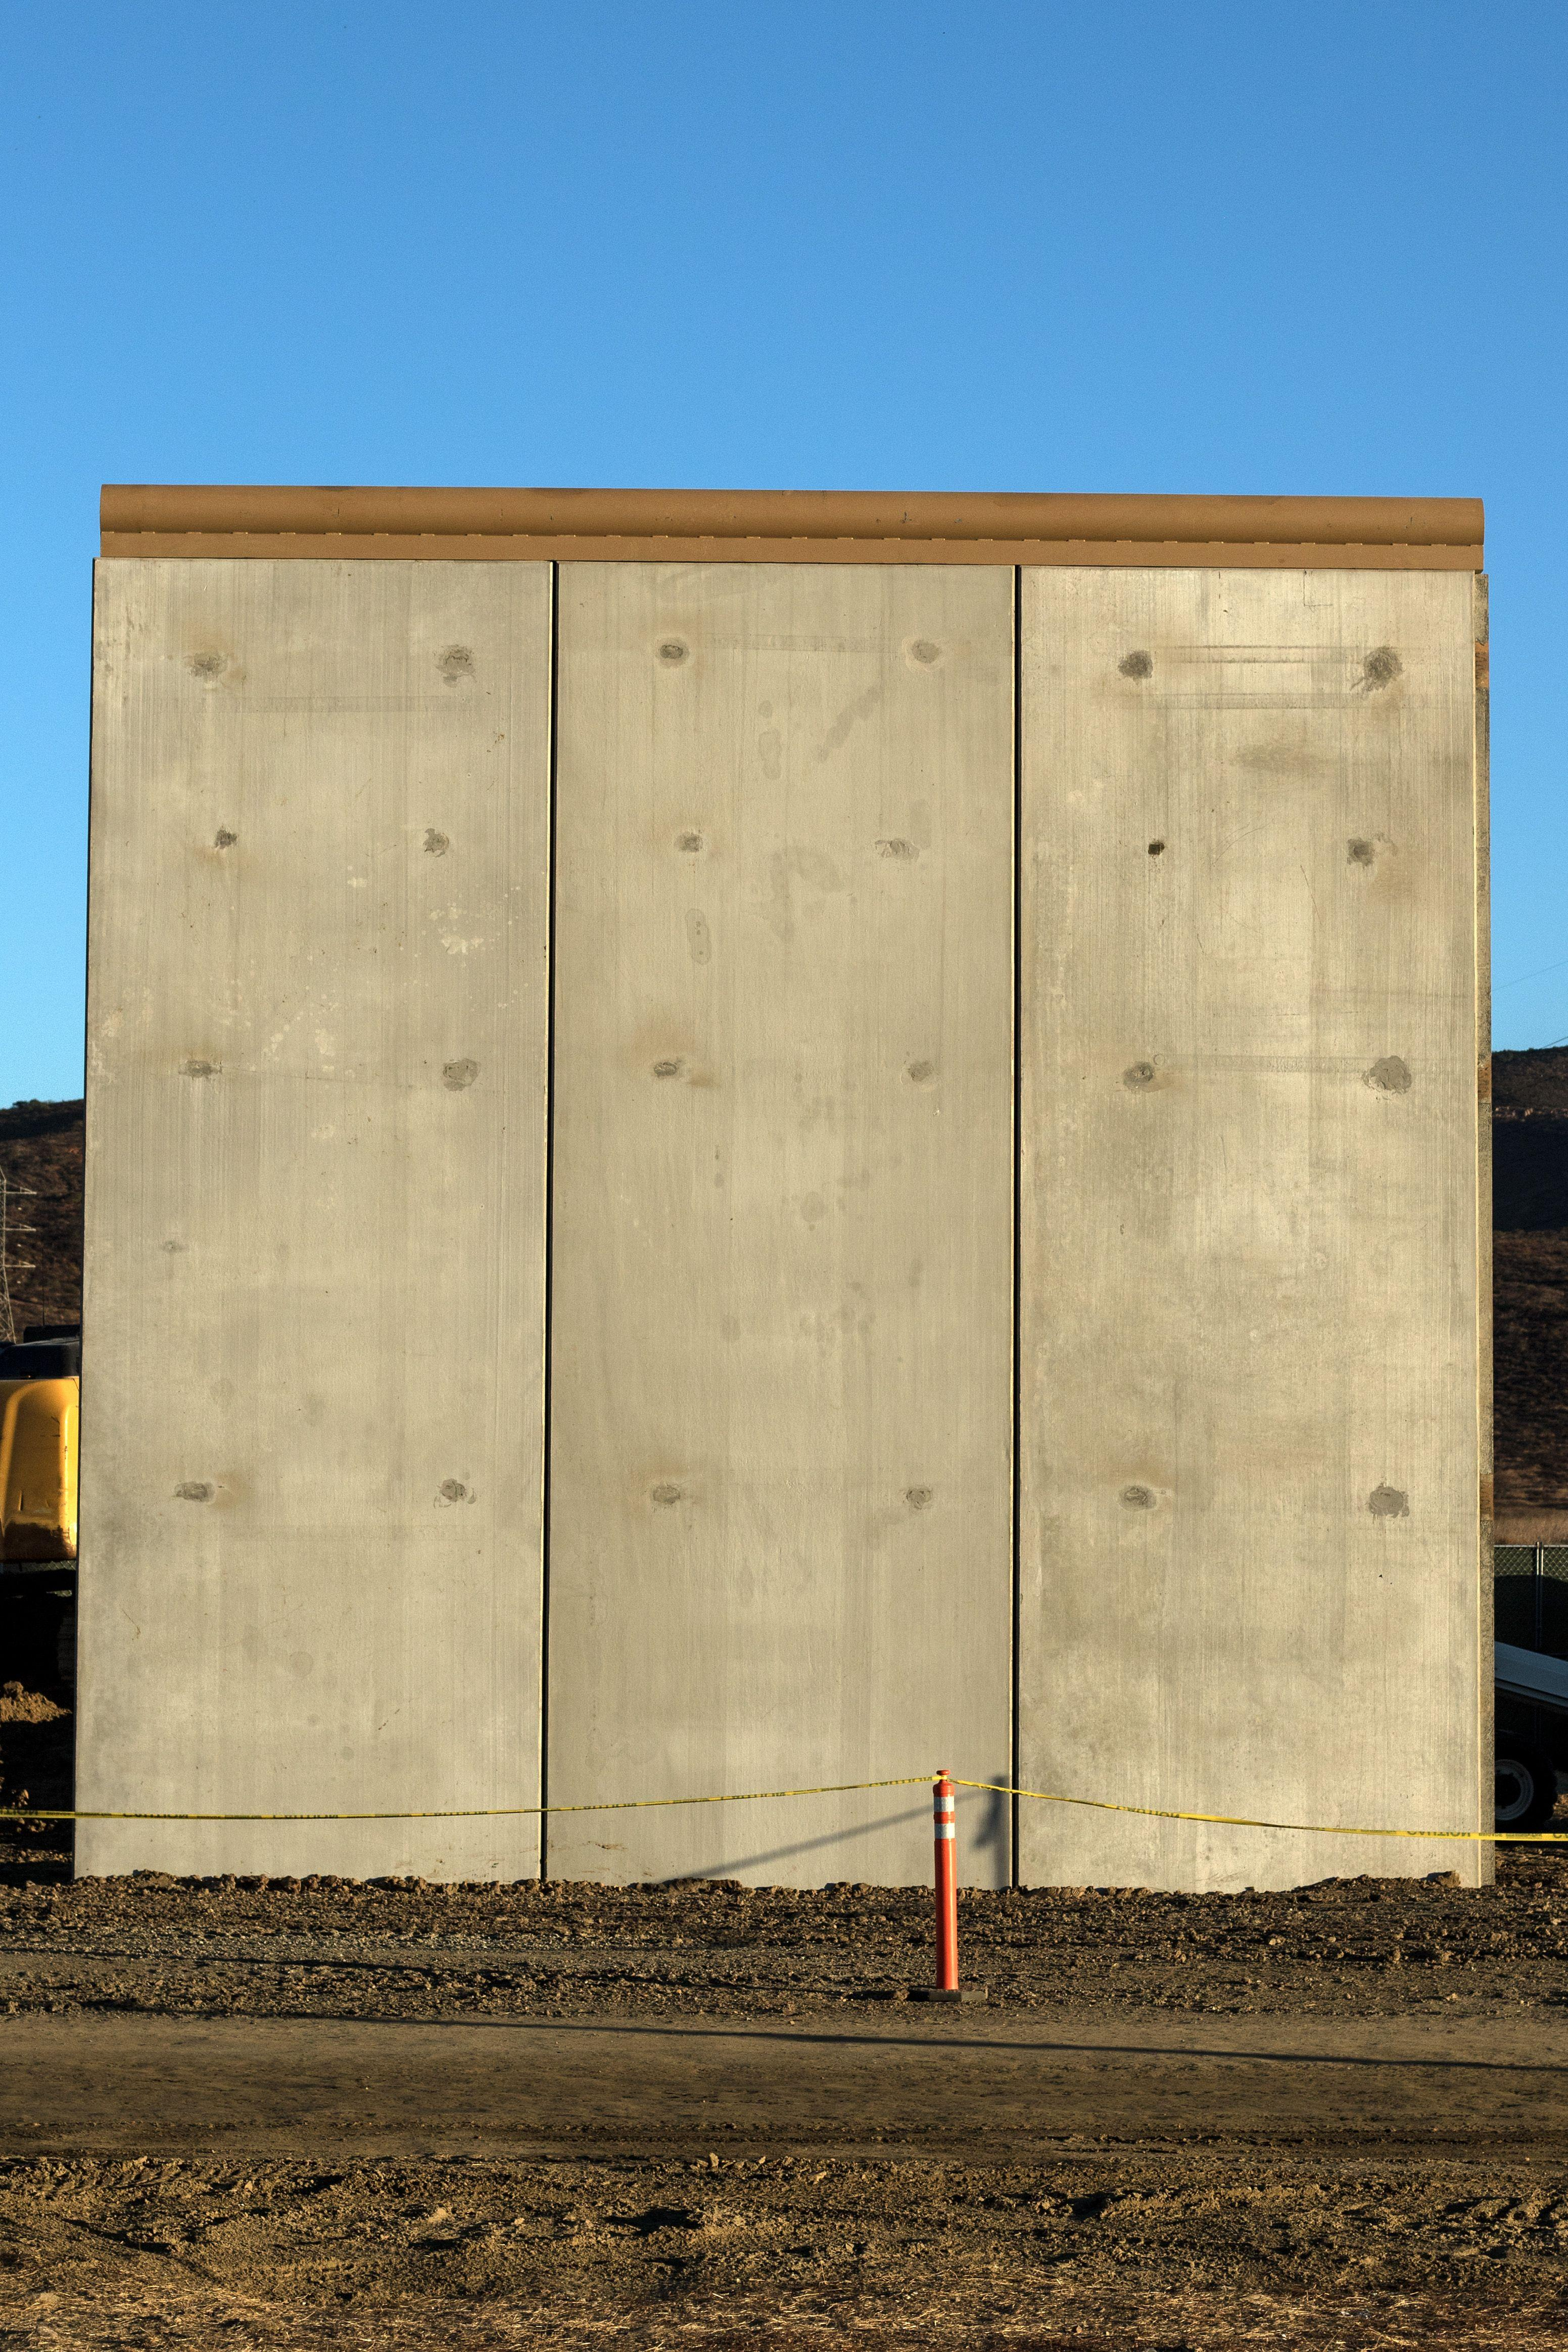 Four of the walls were made with materials other than concrete (Picture: Getty)